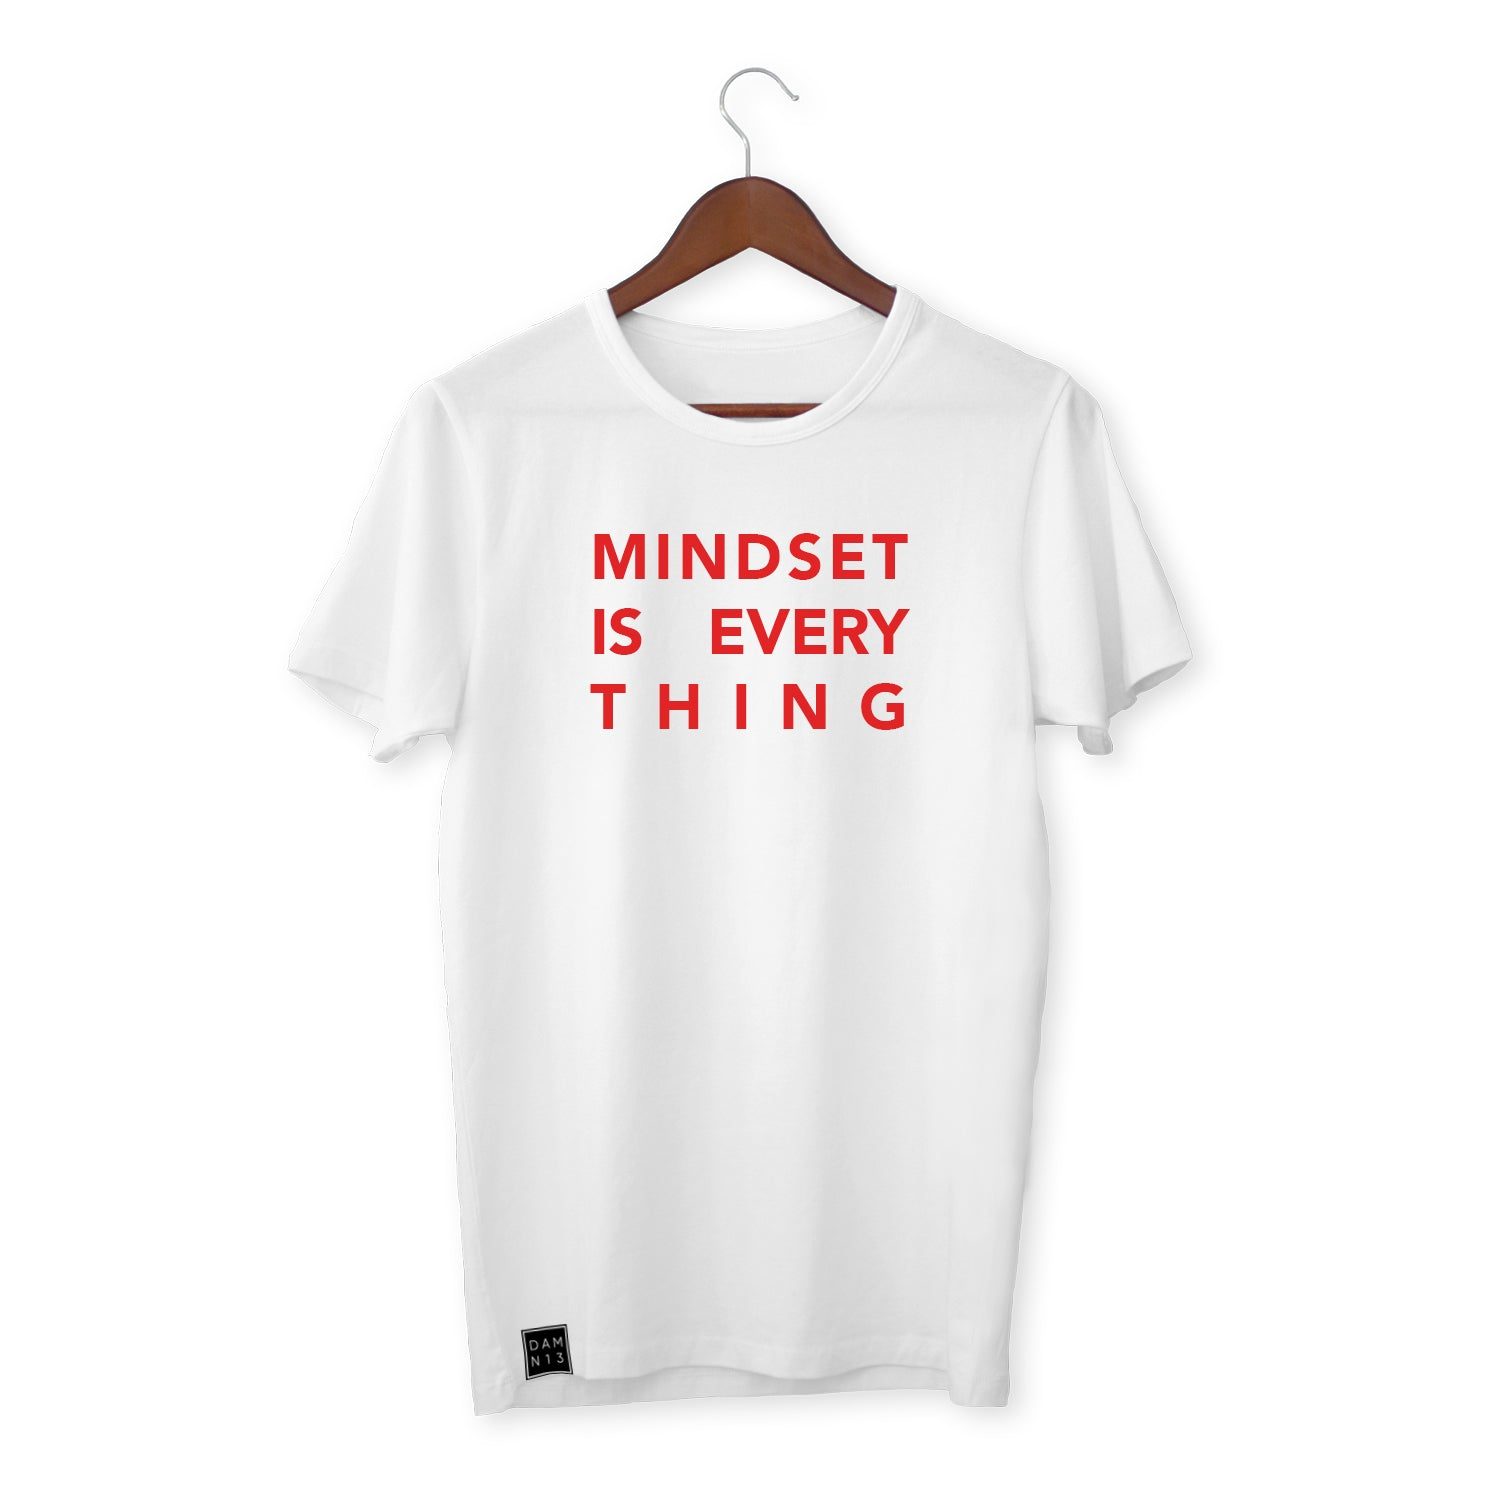 WHITE T-SHIRT / MINDSET IS EVERYTHING